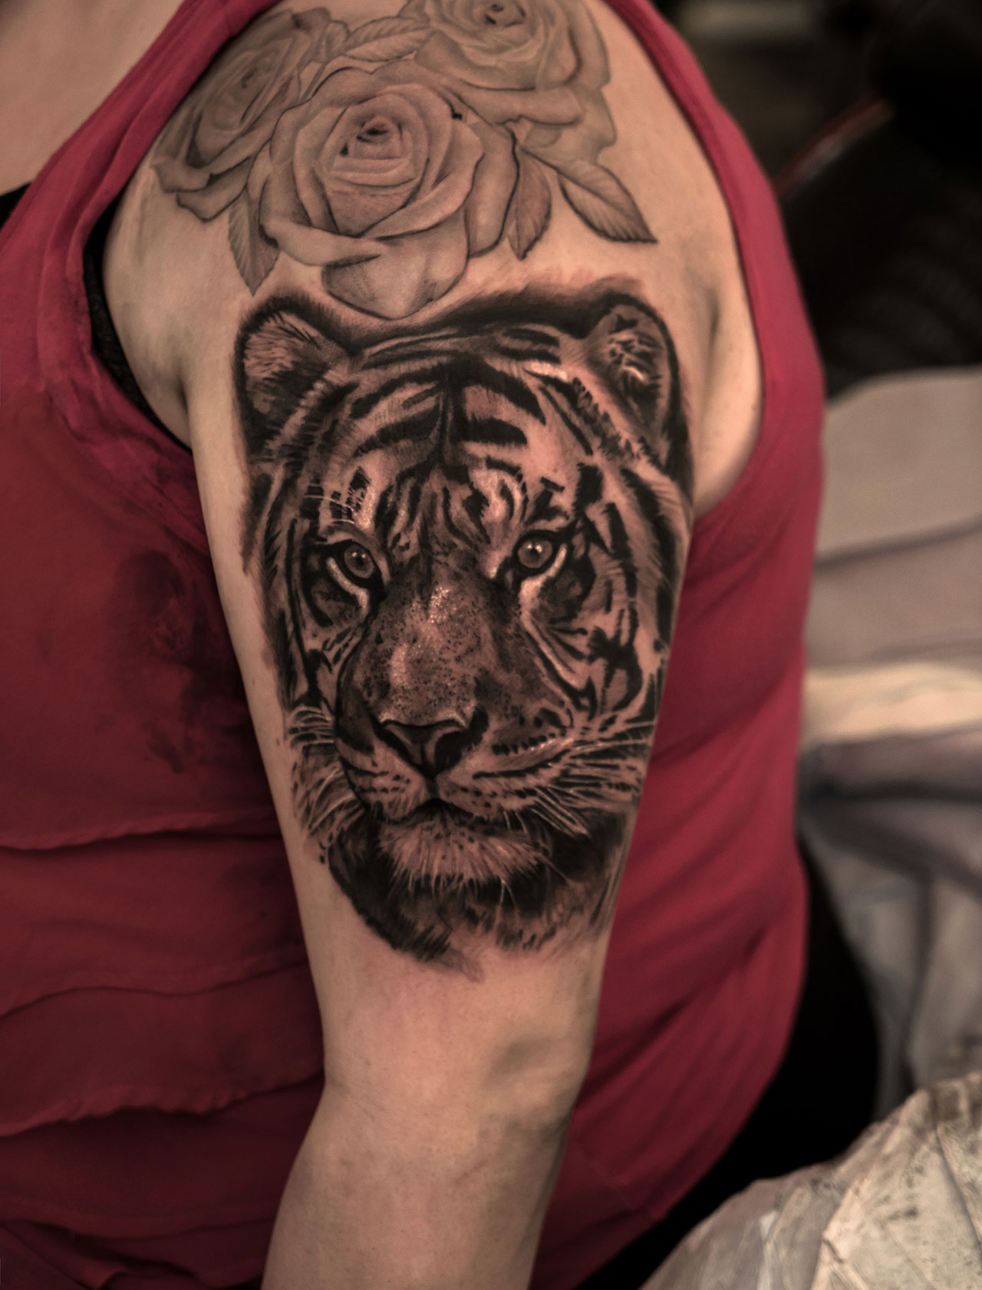 Photorealistic tiger tattoo by Scoot Ink